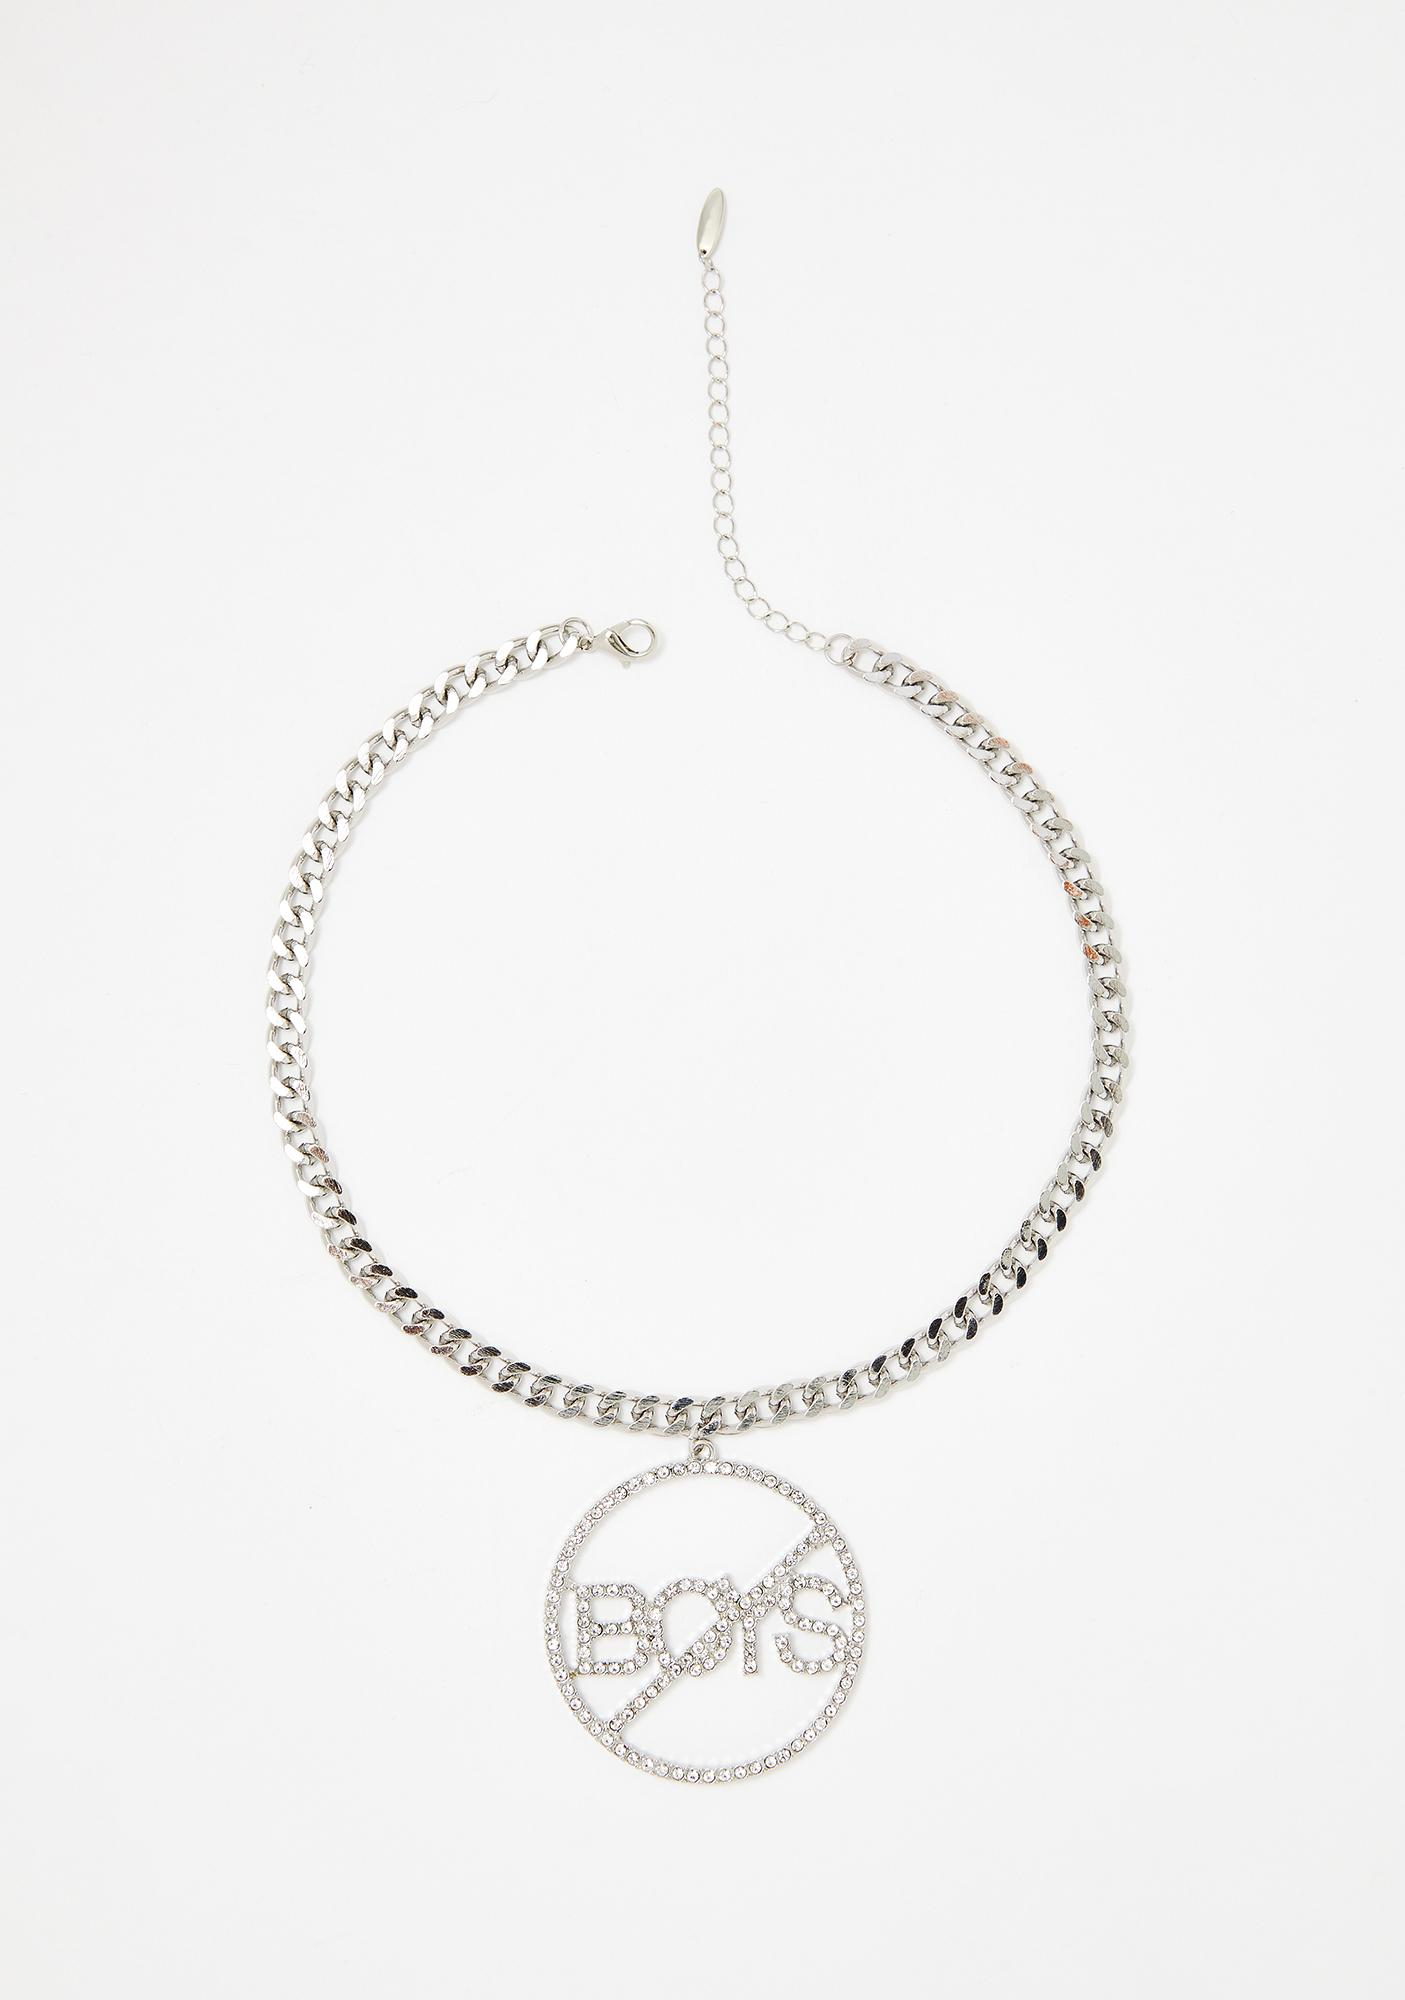 No Boys Chain Necklace